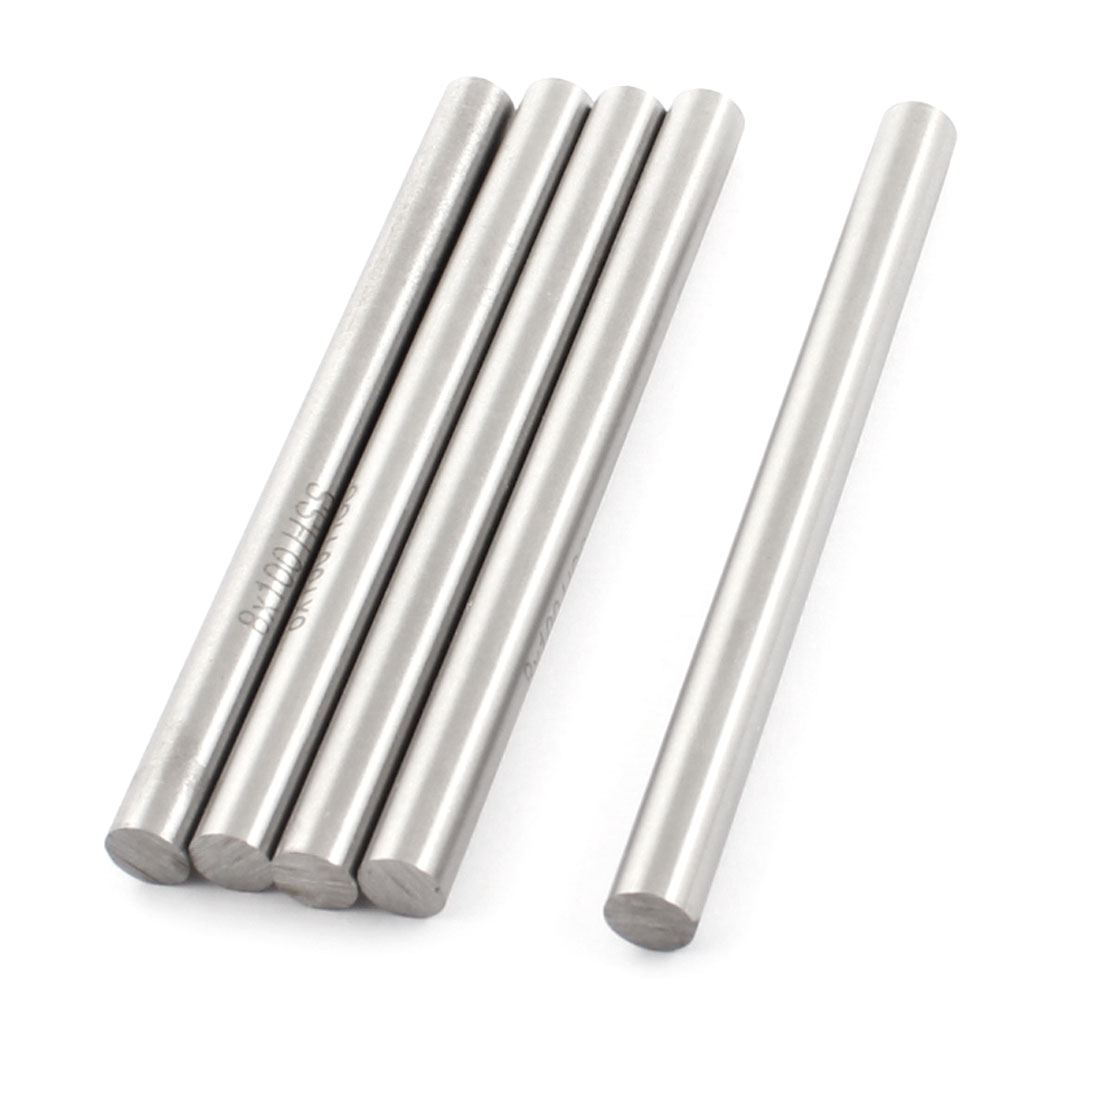 5Pcs 8mm x 100mm Silver Tone HSS Straight Machine Boring Tool Round Lathe Bar Rod